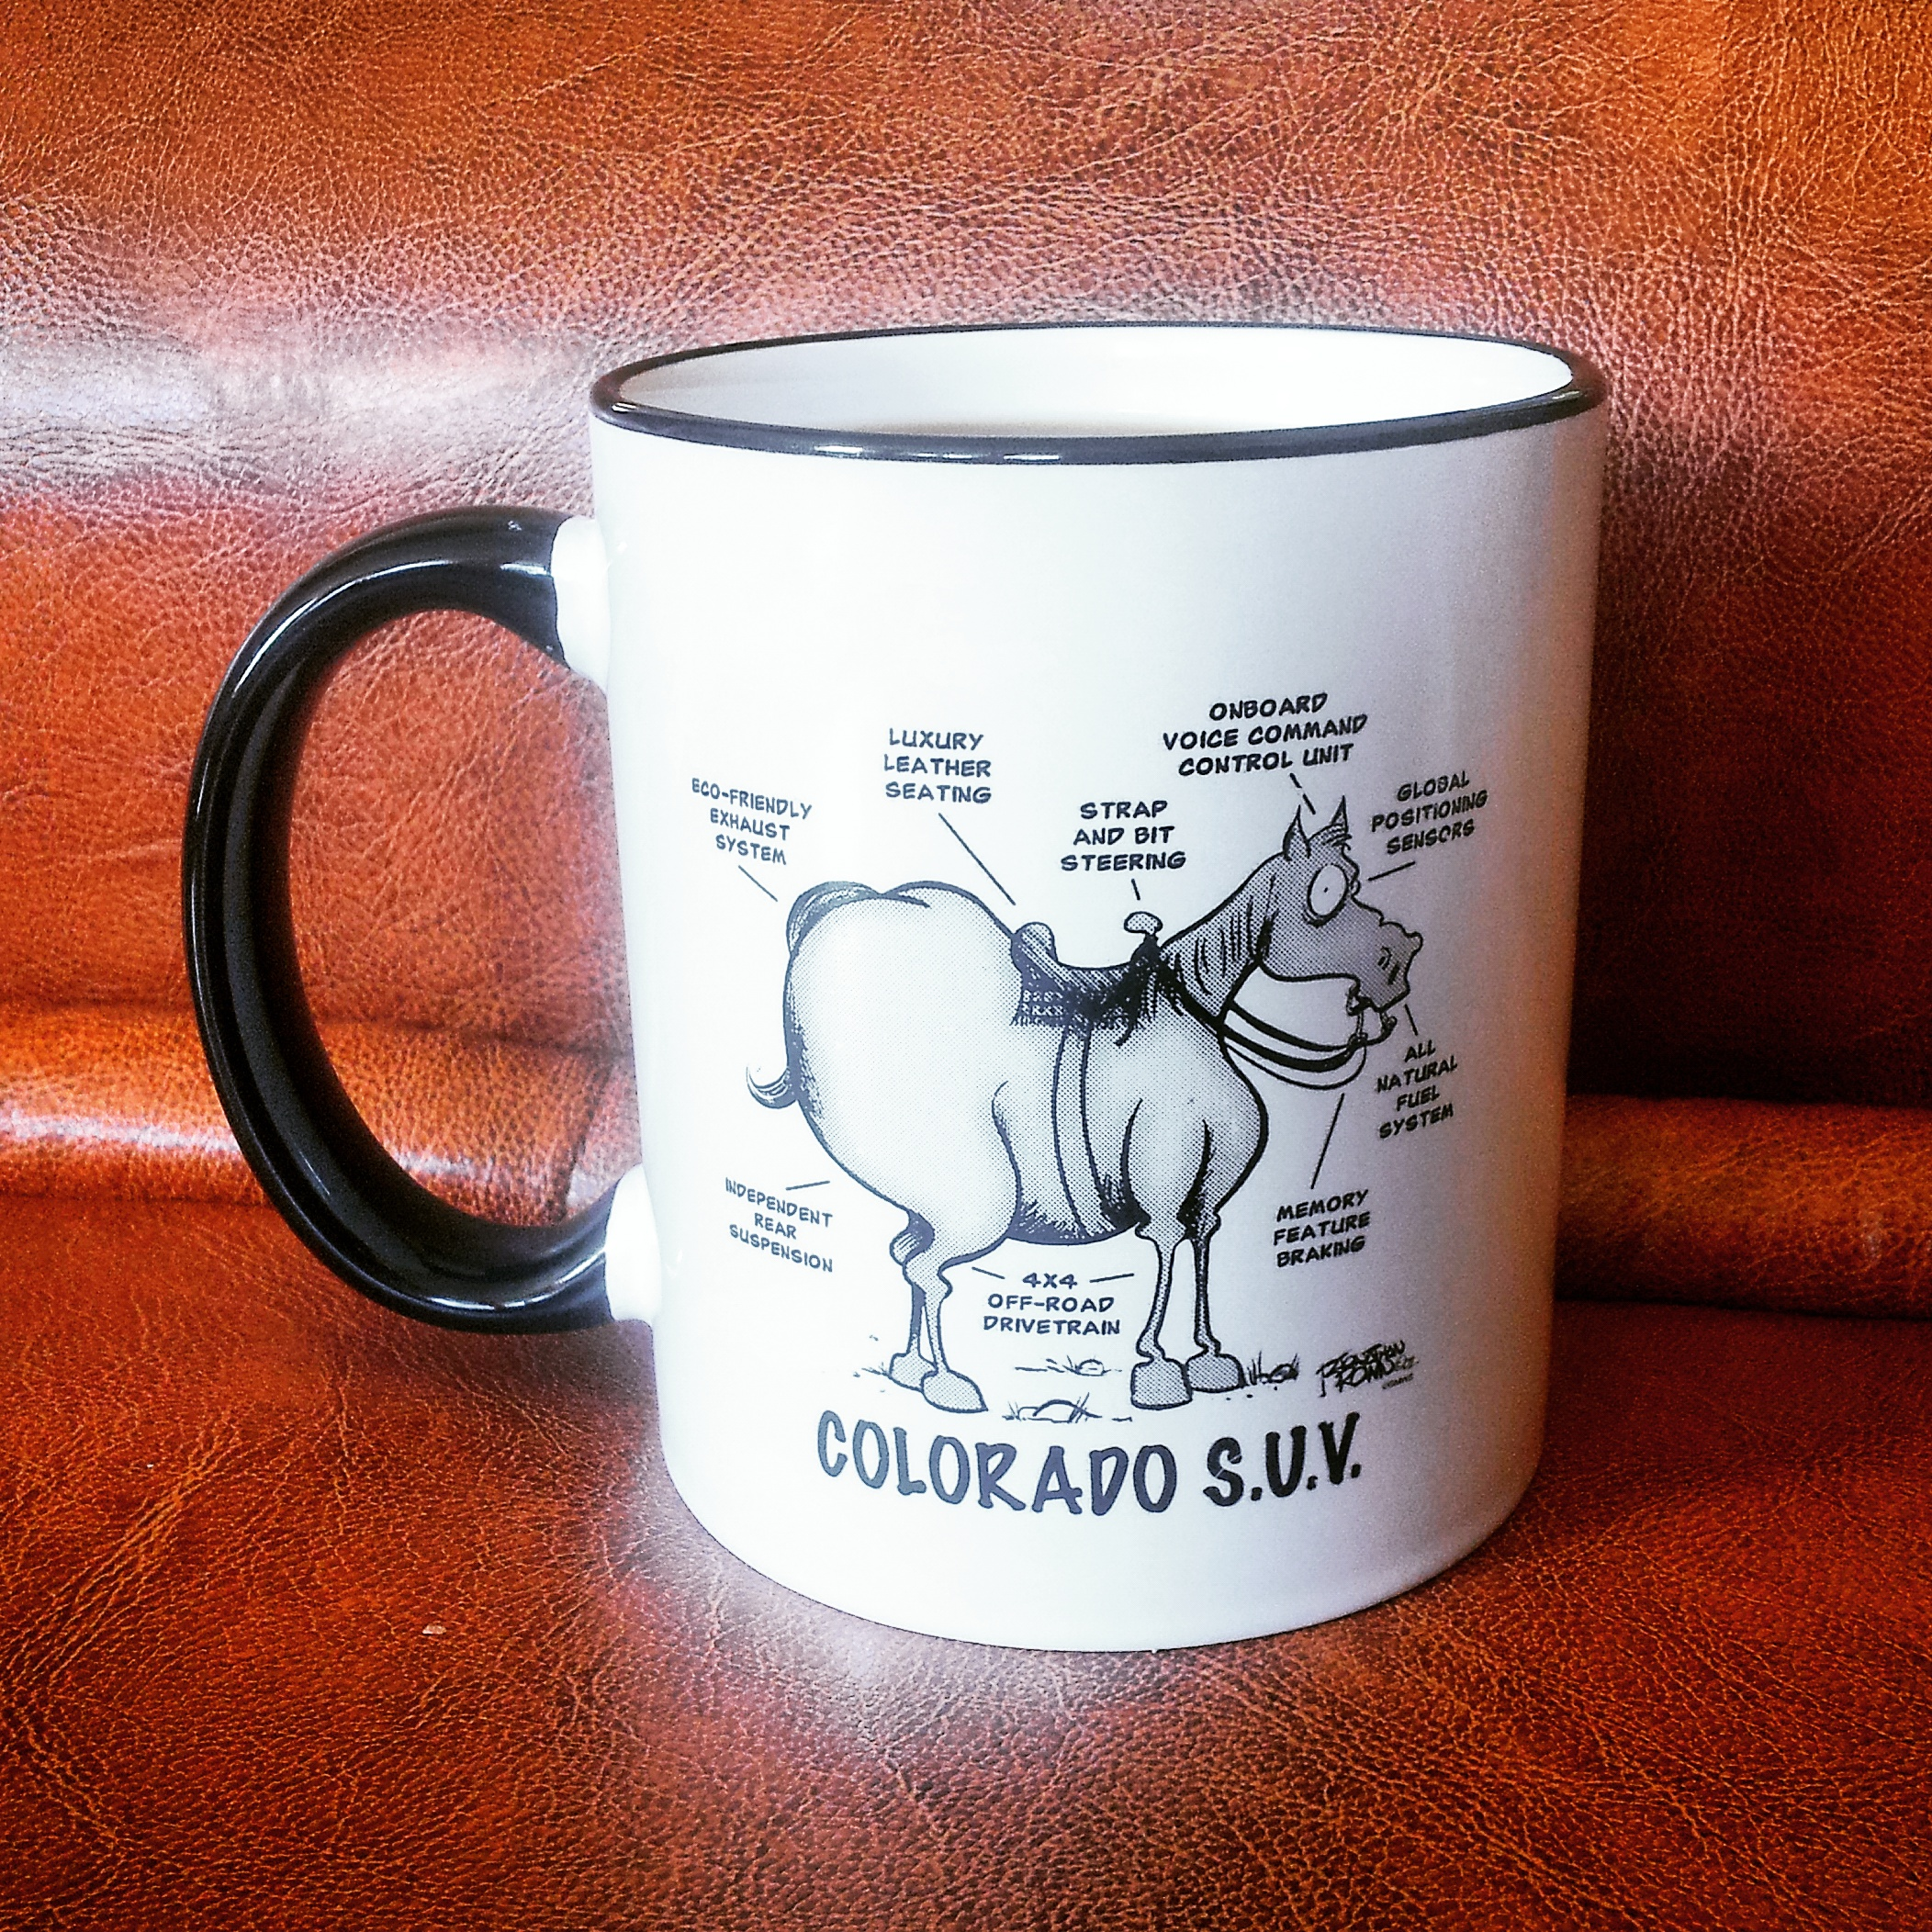 Special funny mug from Denver, USA - travel souvenir